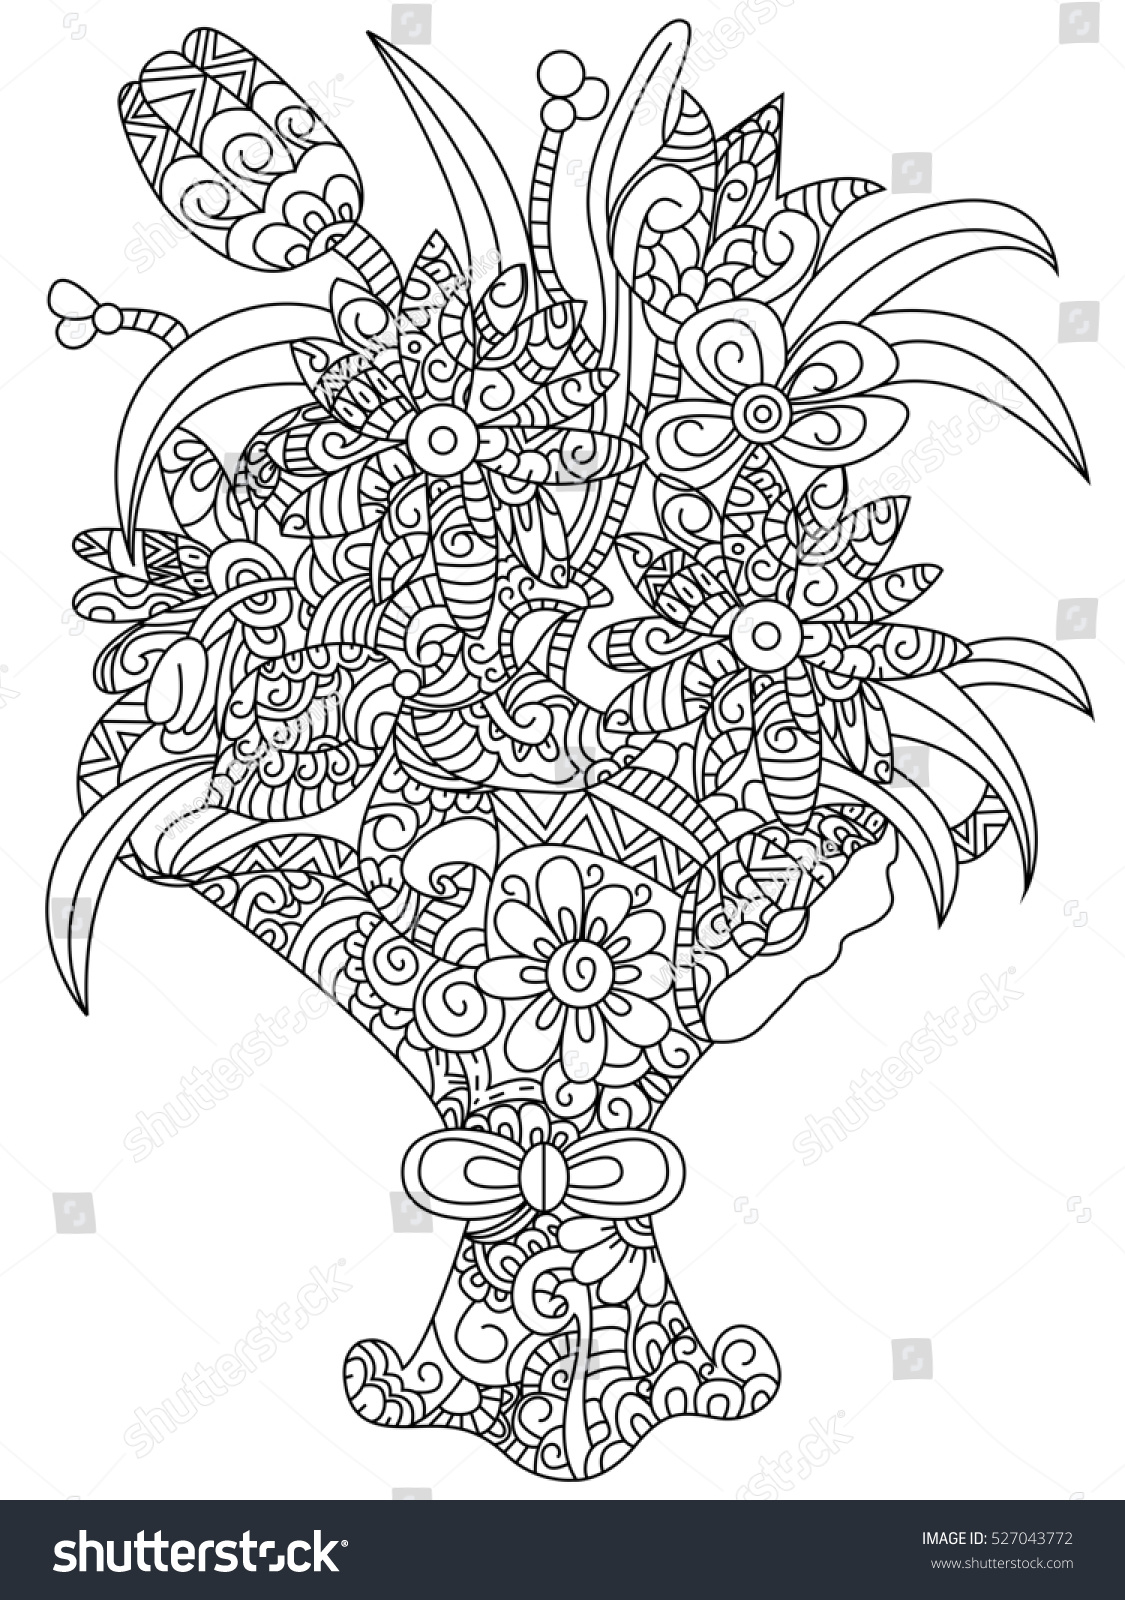 Bouquet Of Flowers Coloring Book For Adults Raster Illustration Flower Anti Stress